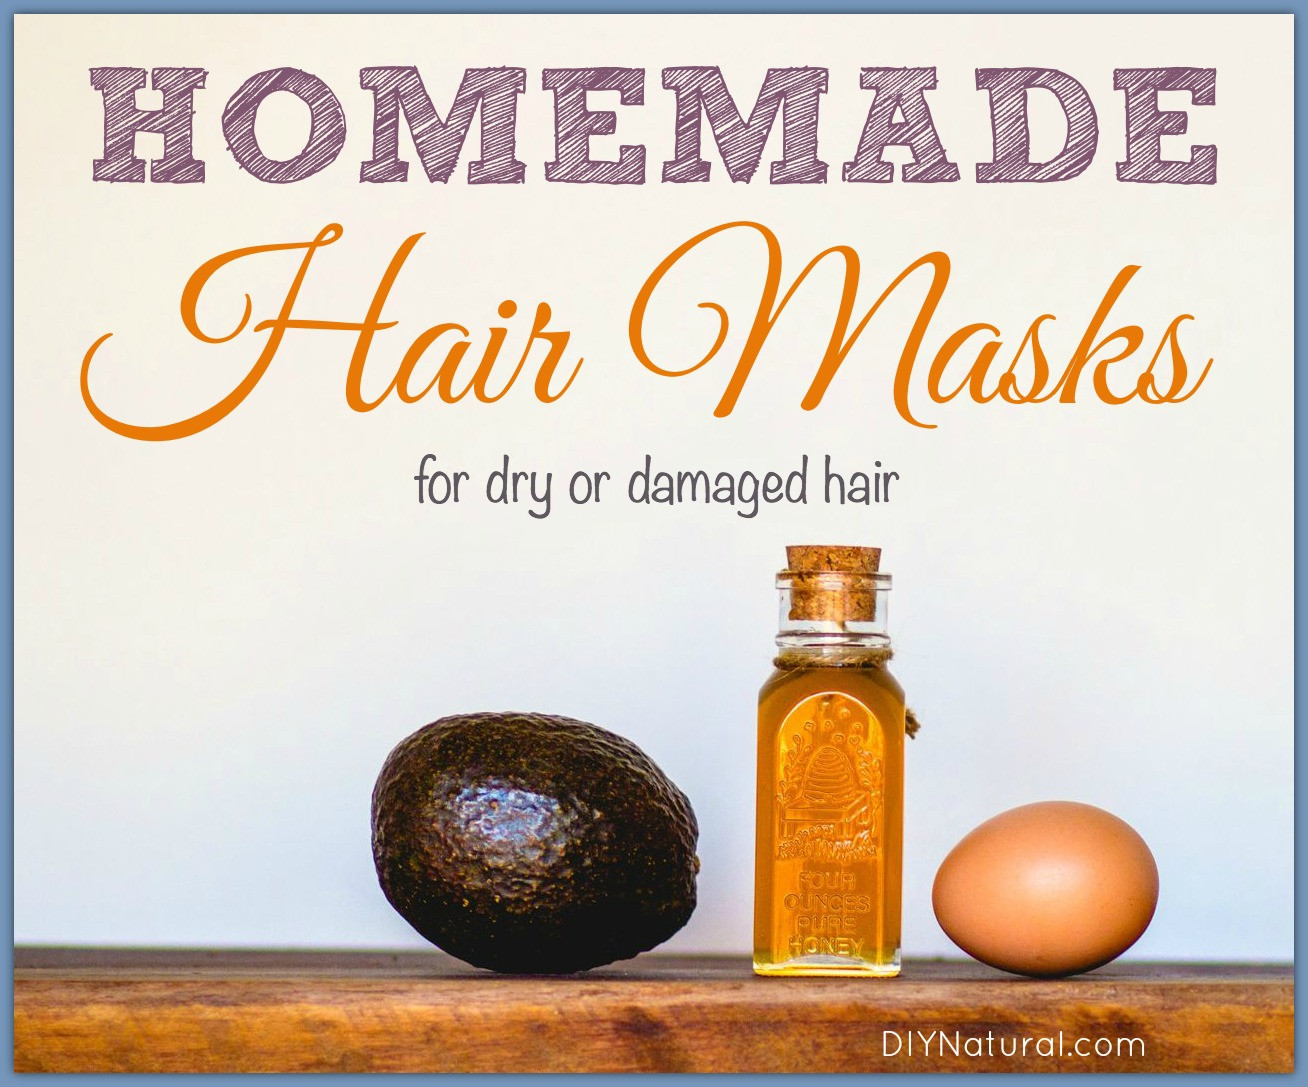 Best ideas about DIY Hair Mask For Dry Damaged Hair . Save or Pin Homemade Hair Masks for Dry or Damaged Hair Now.